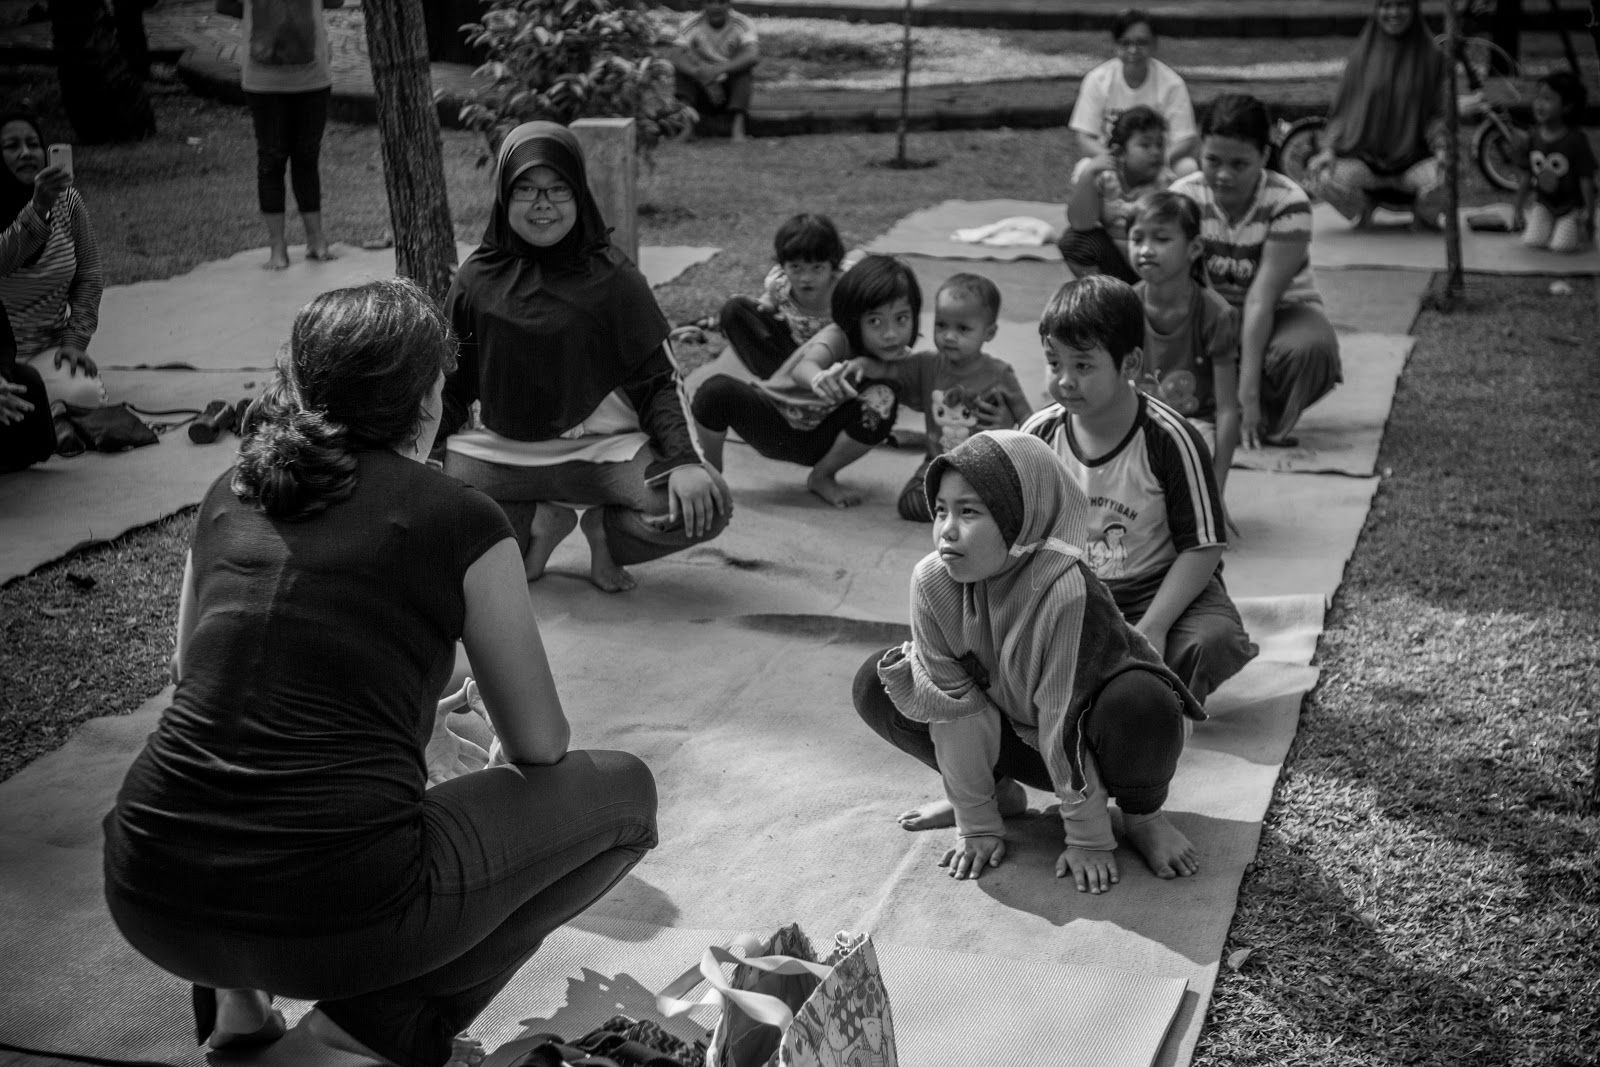 Many yoga students who wear the hijab, including children, have benefited from yoga and even became yoga teachers in Indonesia.